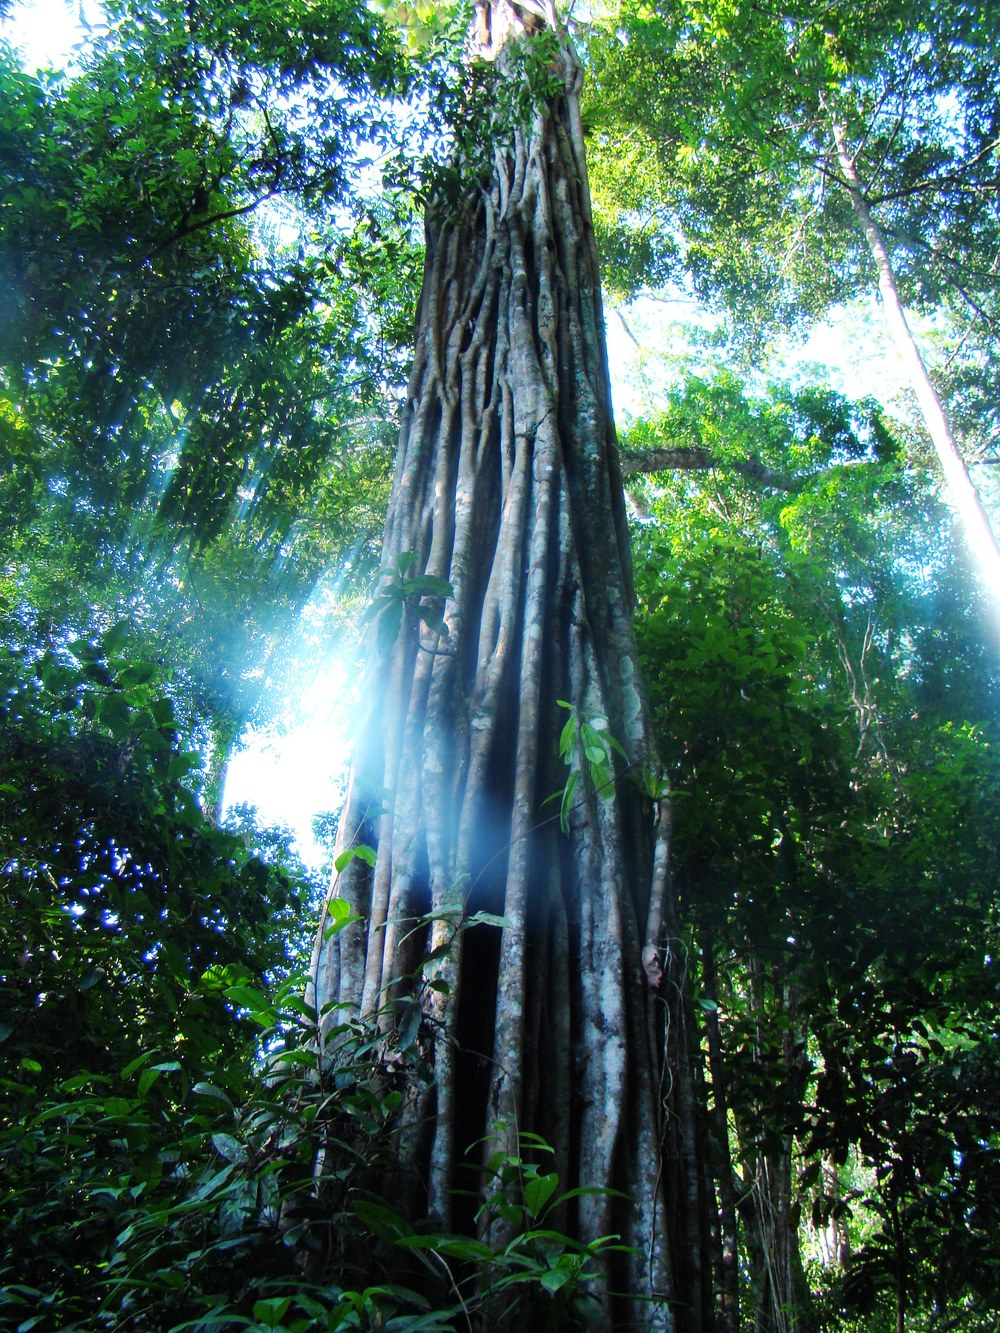 A stately acaricuara tree from central Amazonia (photo by William Laurance).